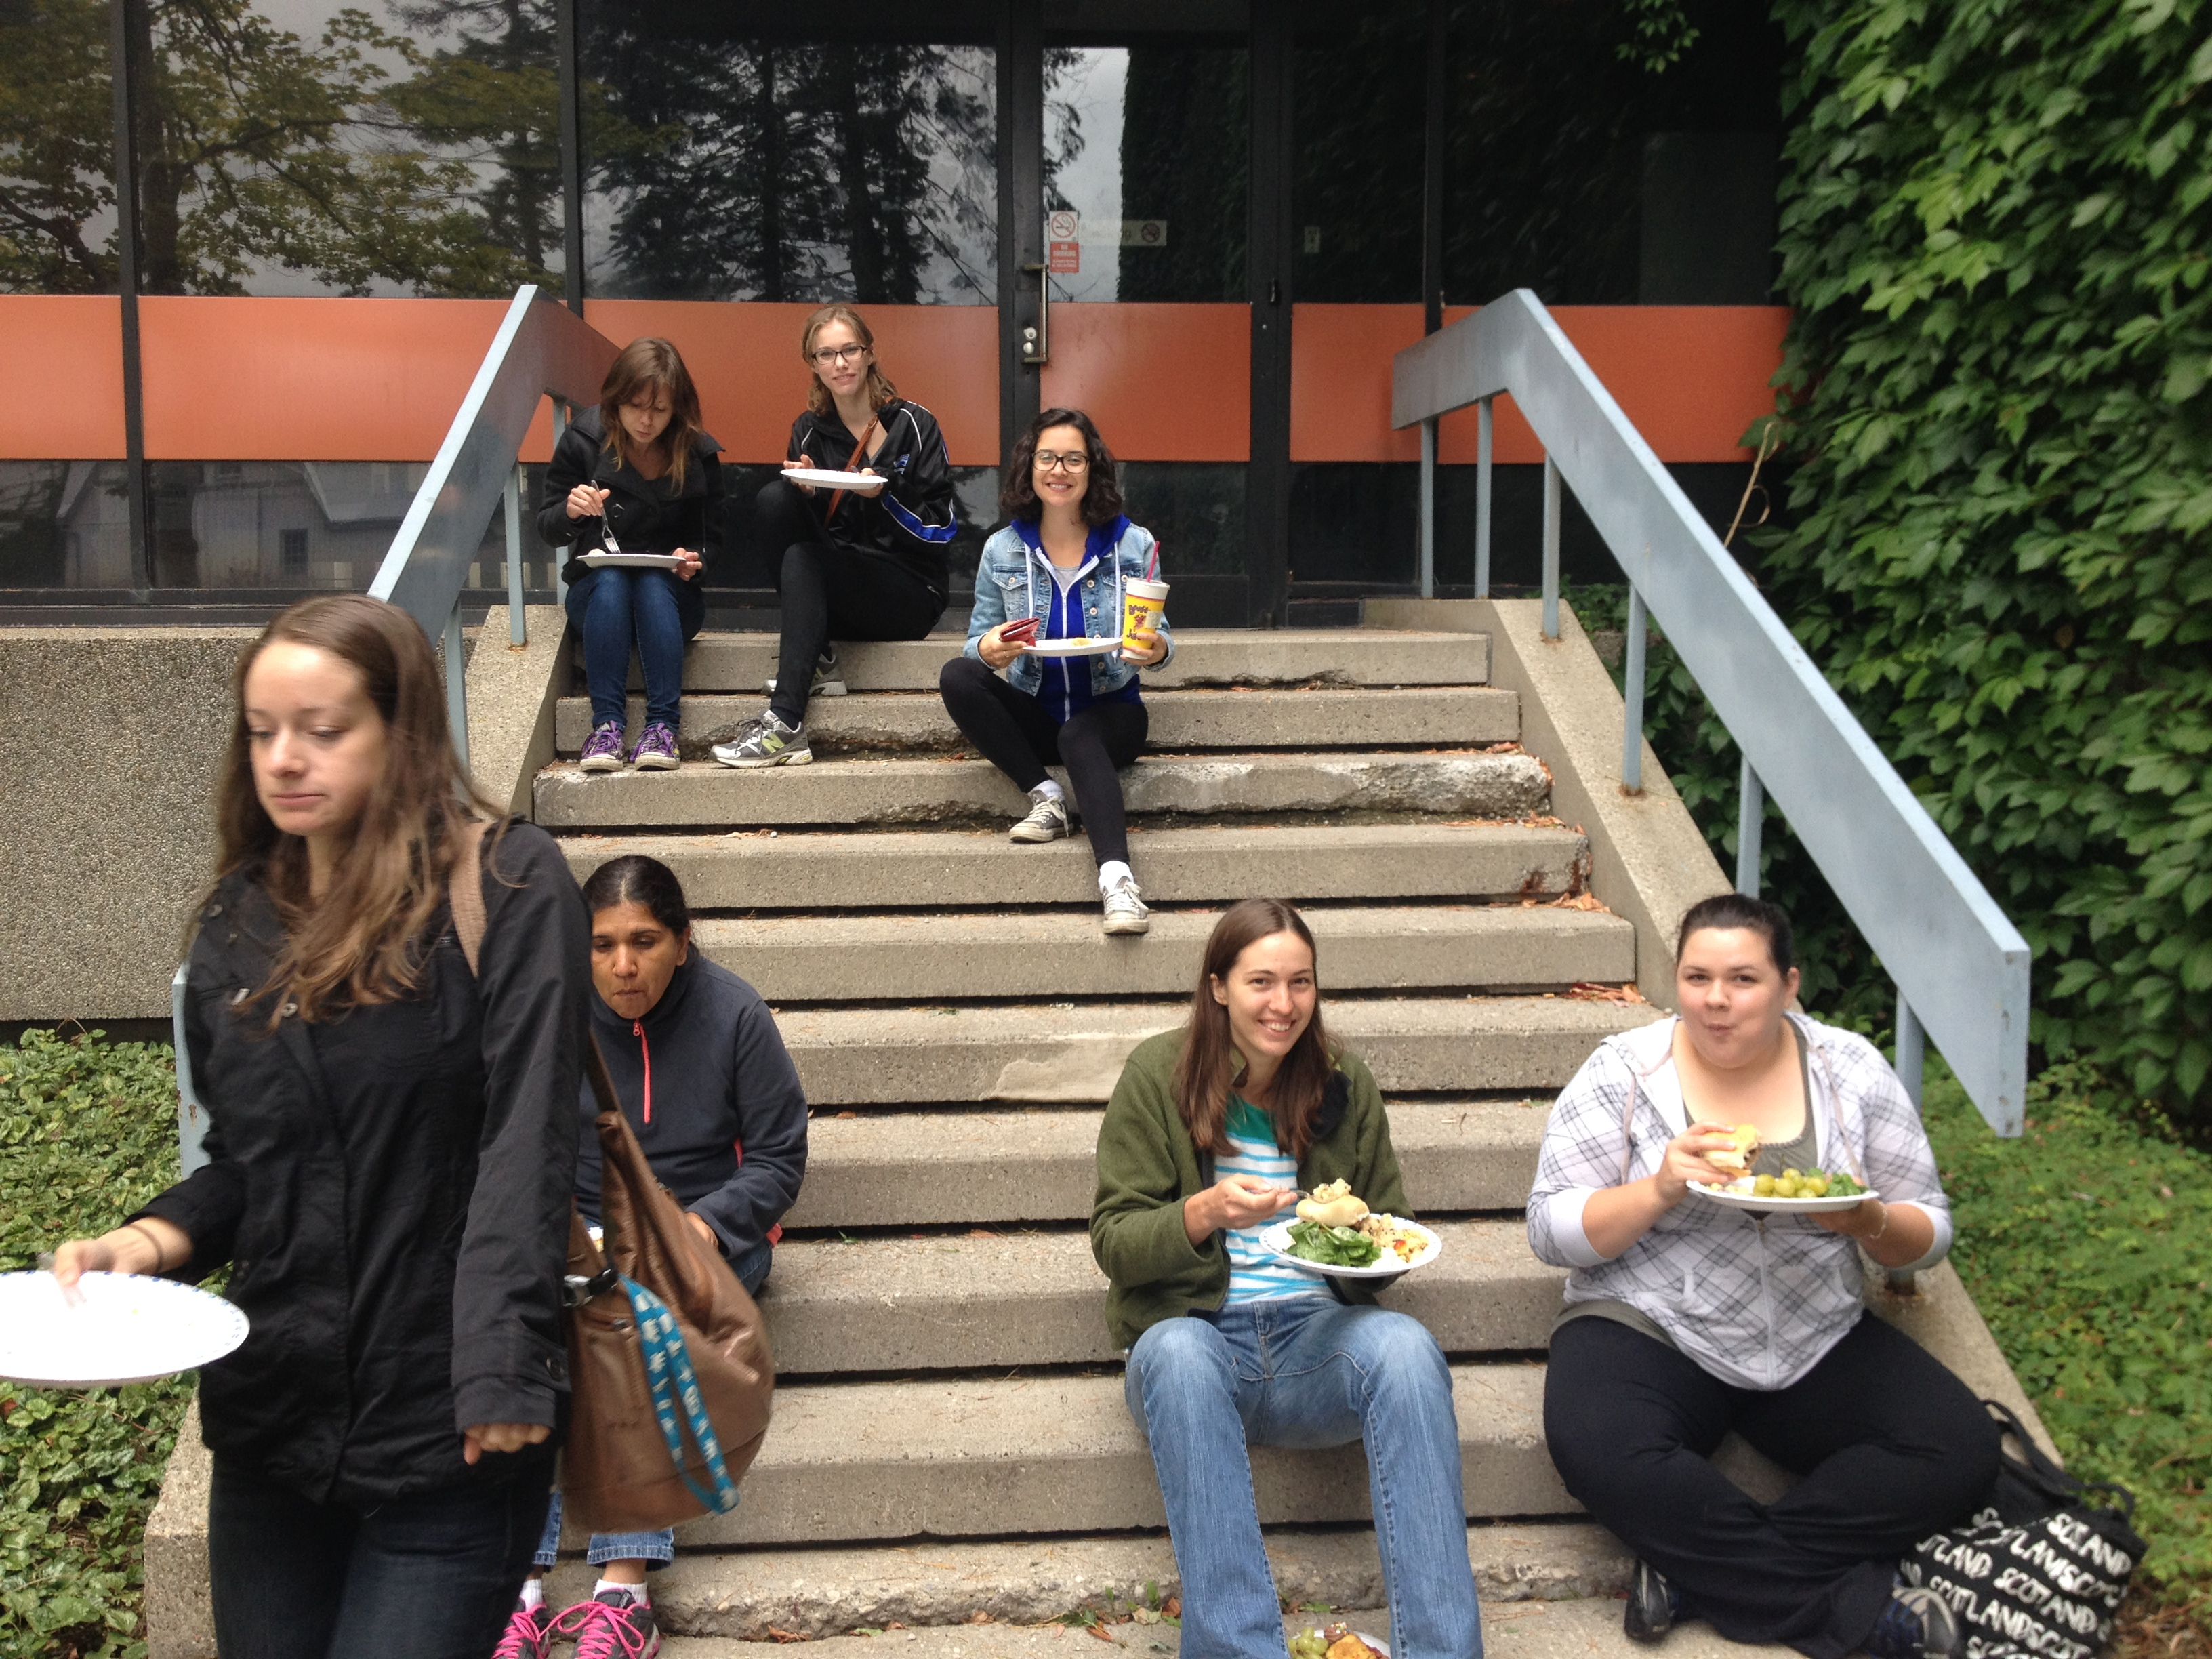 BBQ on the stairs